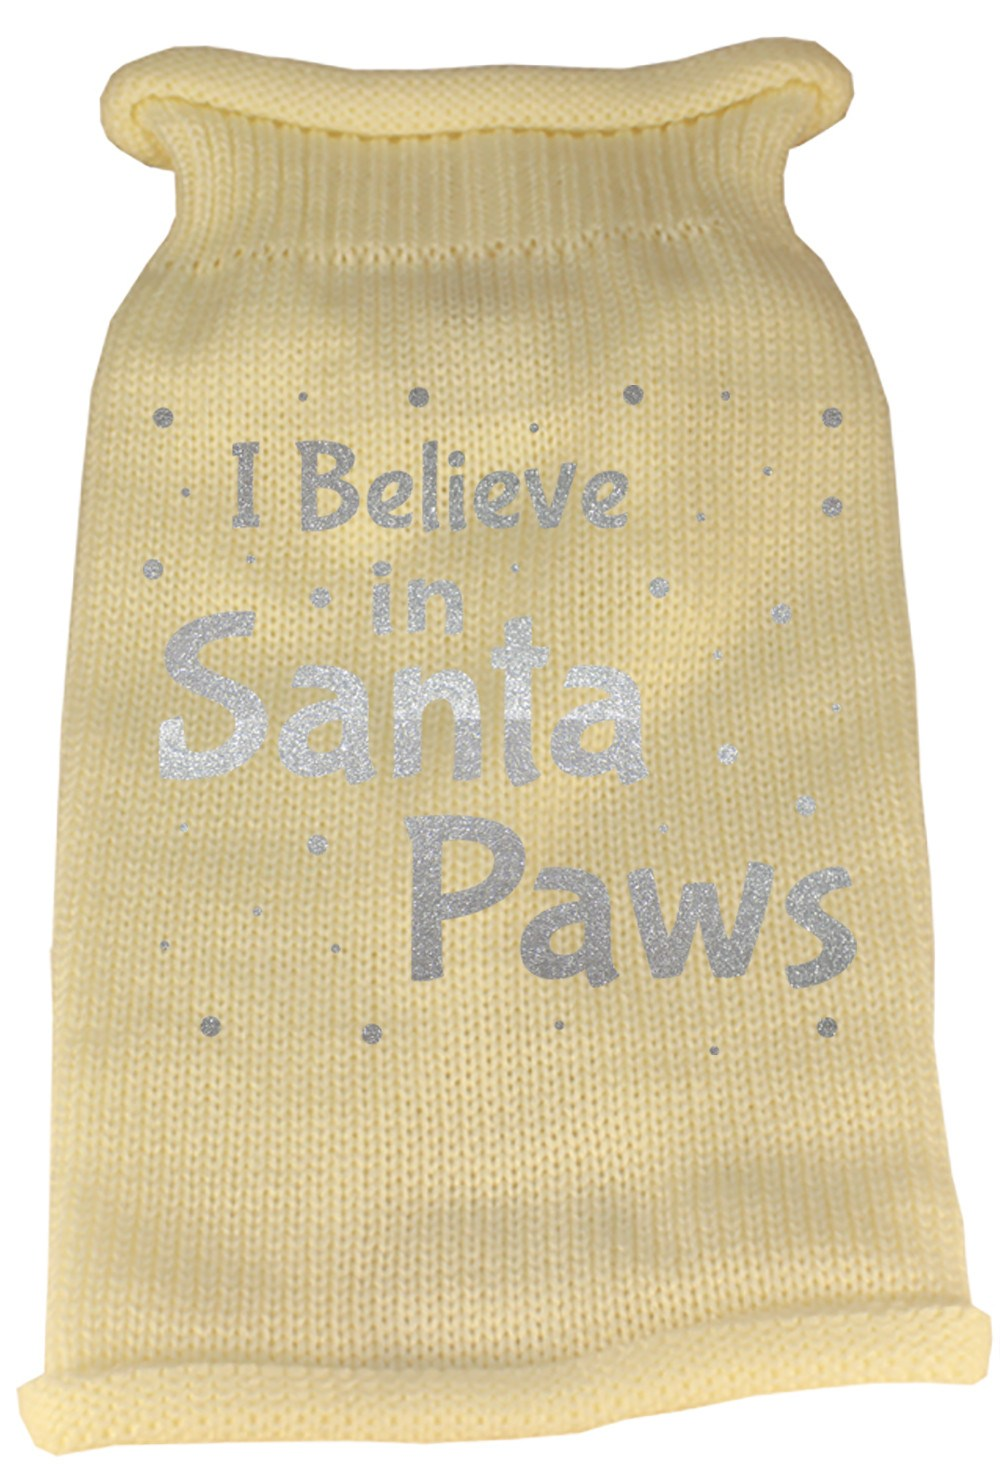 Mirage - Knit Santa Paws Christmas Dog Sweater - Cream